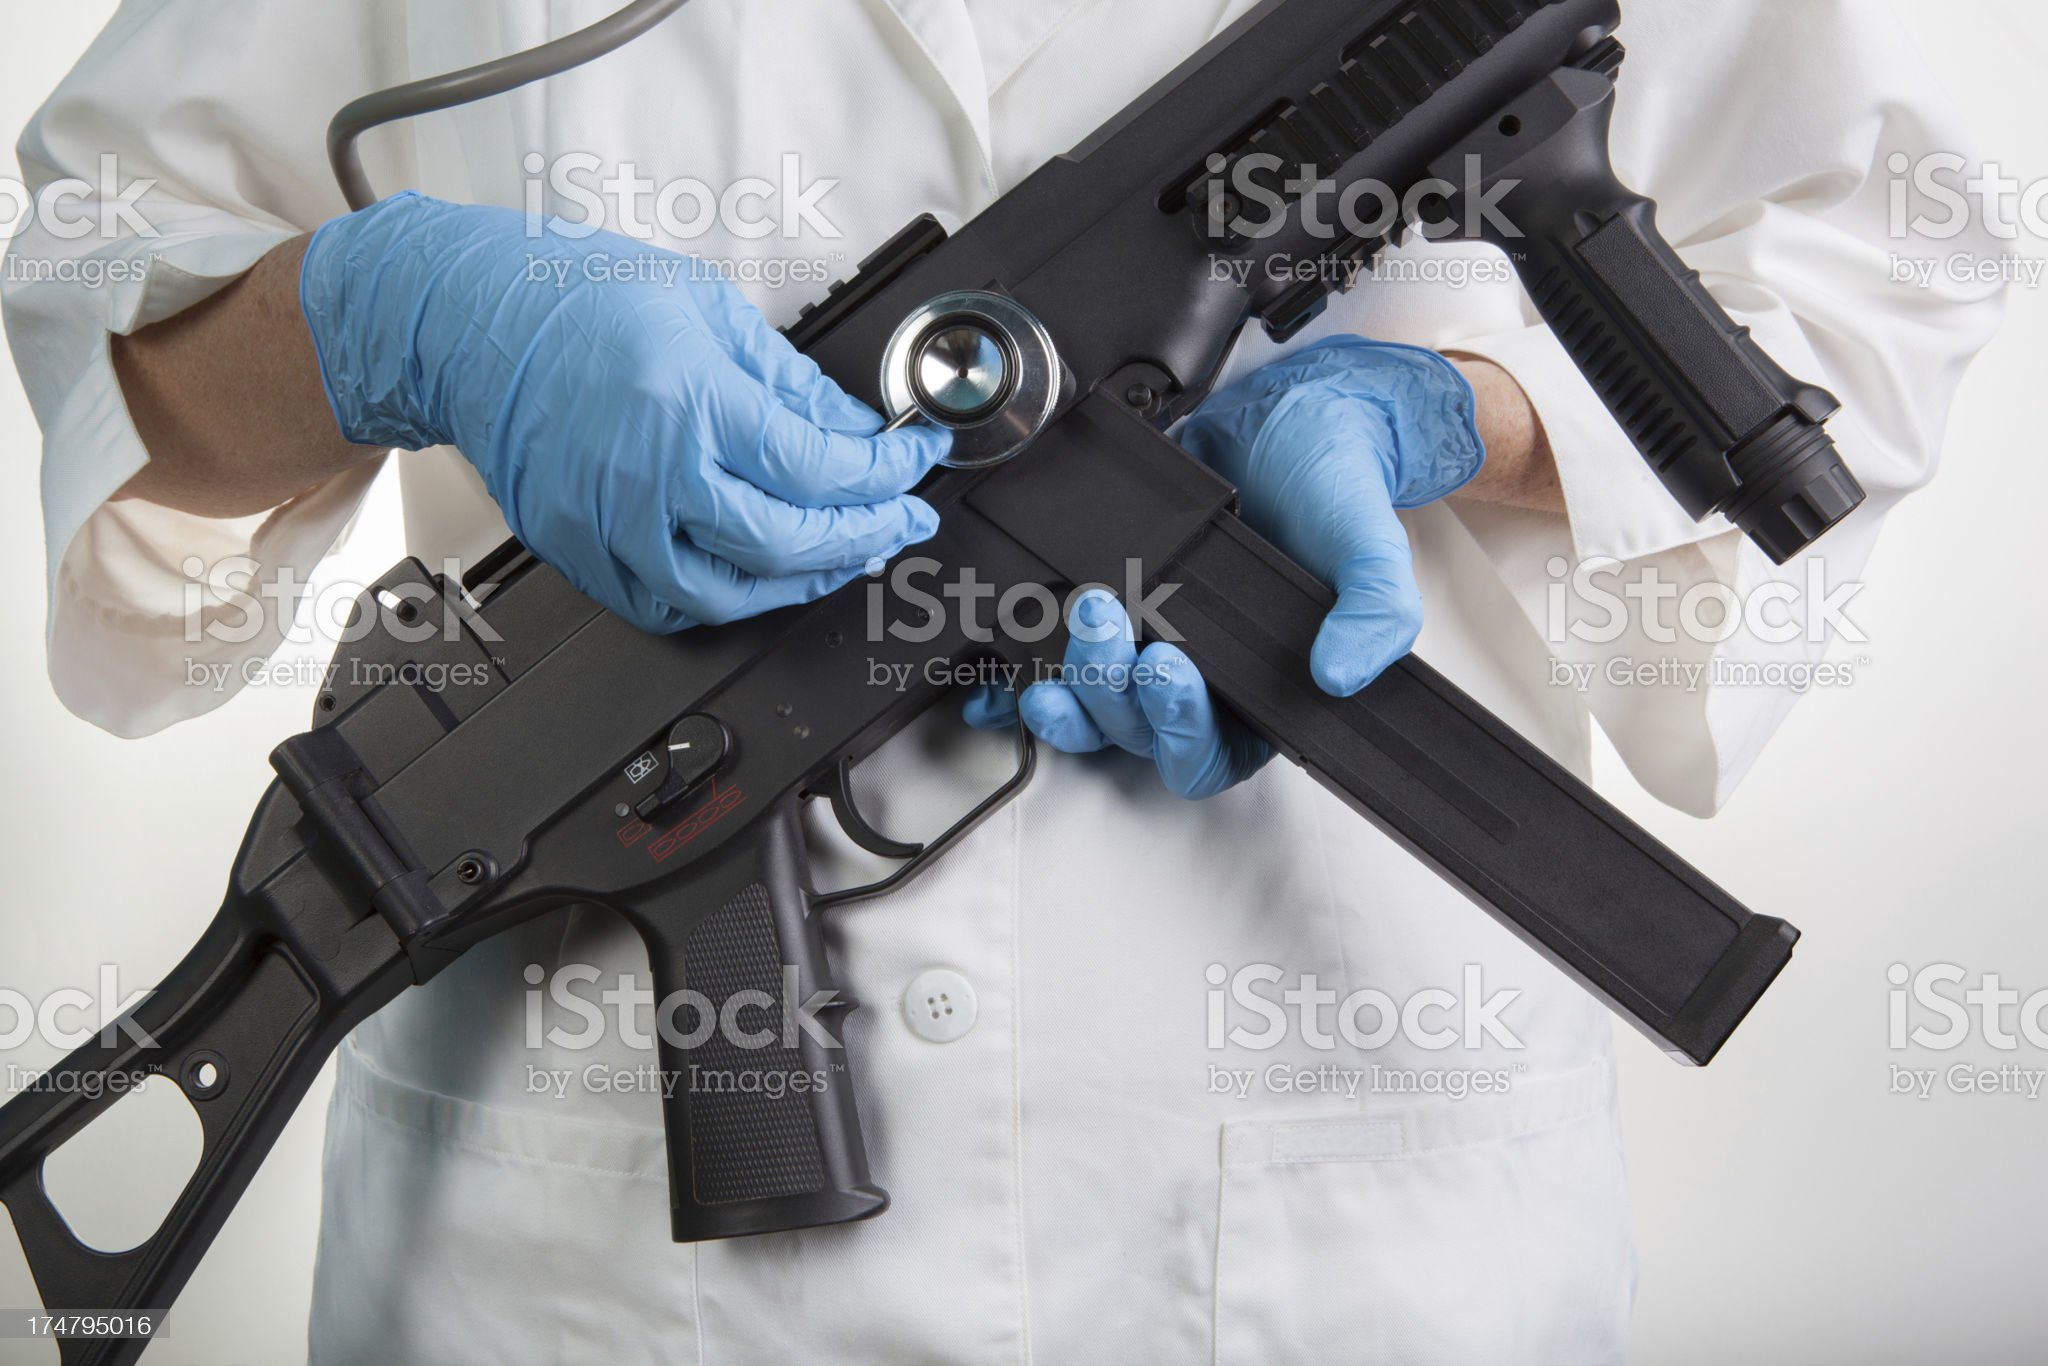 Stethoscope gun Health & Safety violence shooting assault weapon royalty-free stock photo